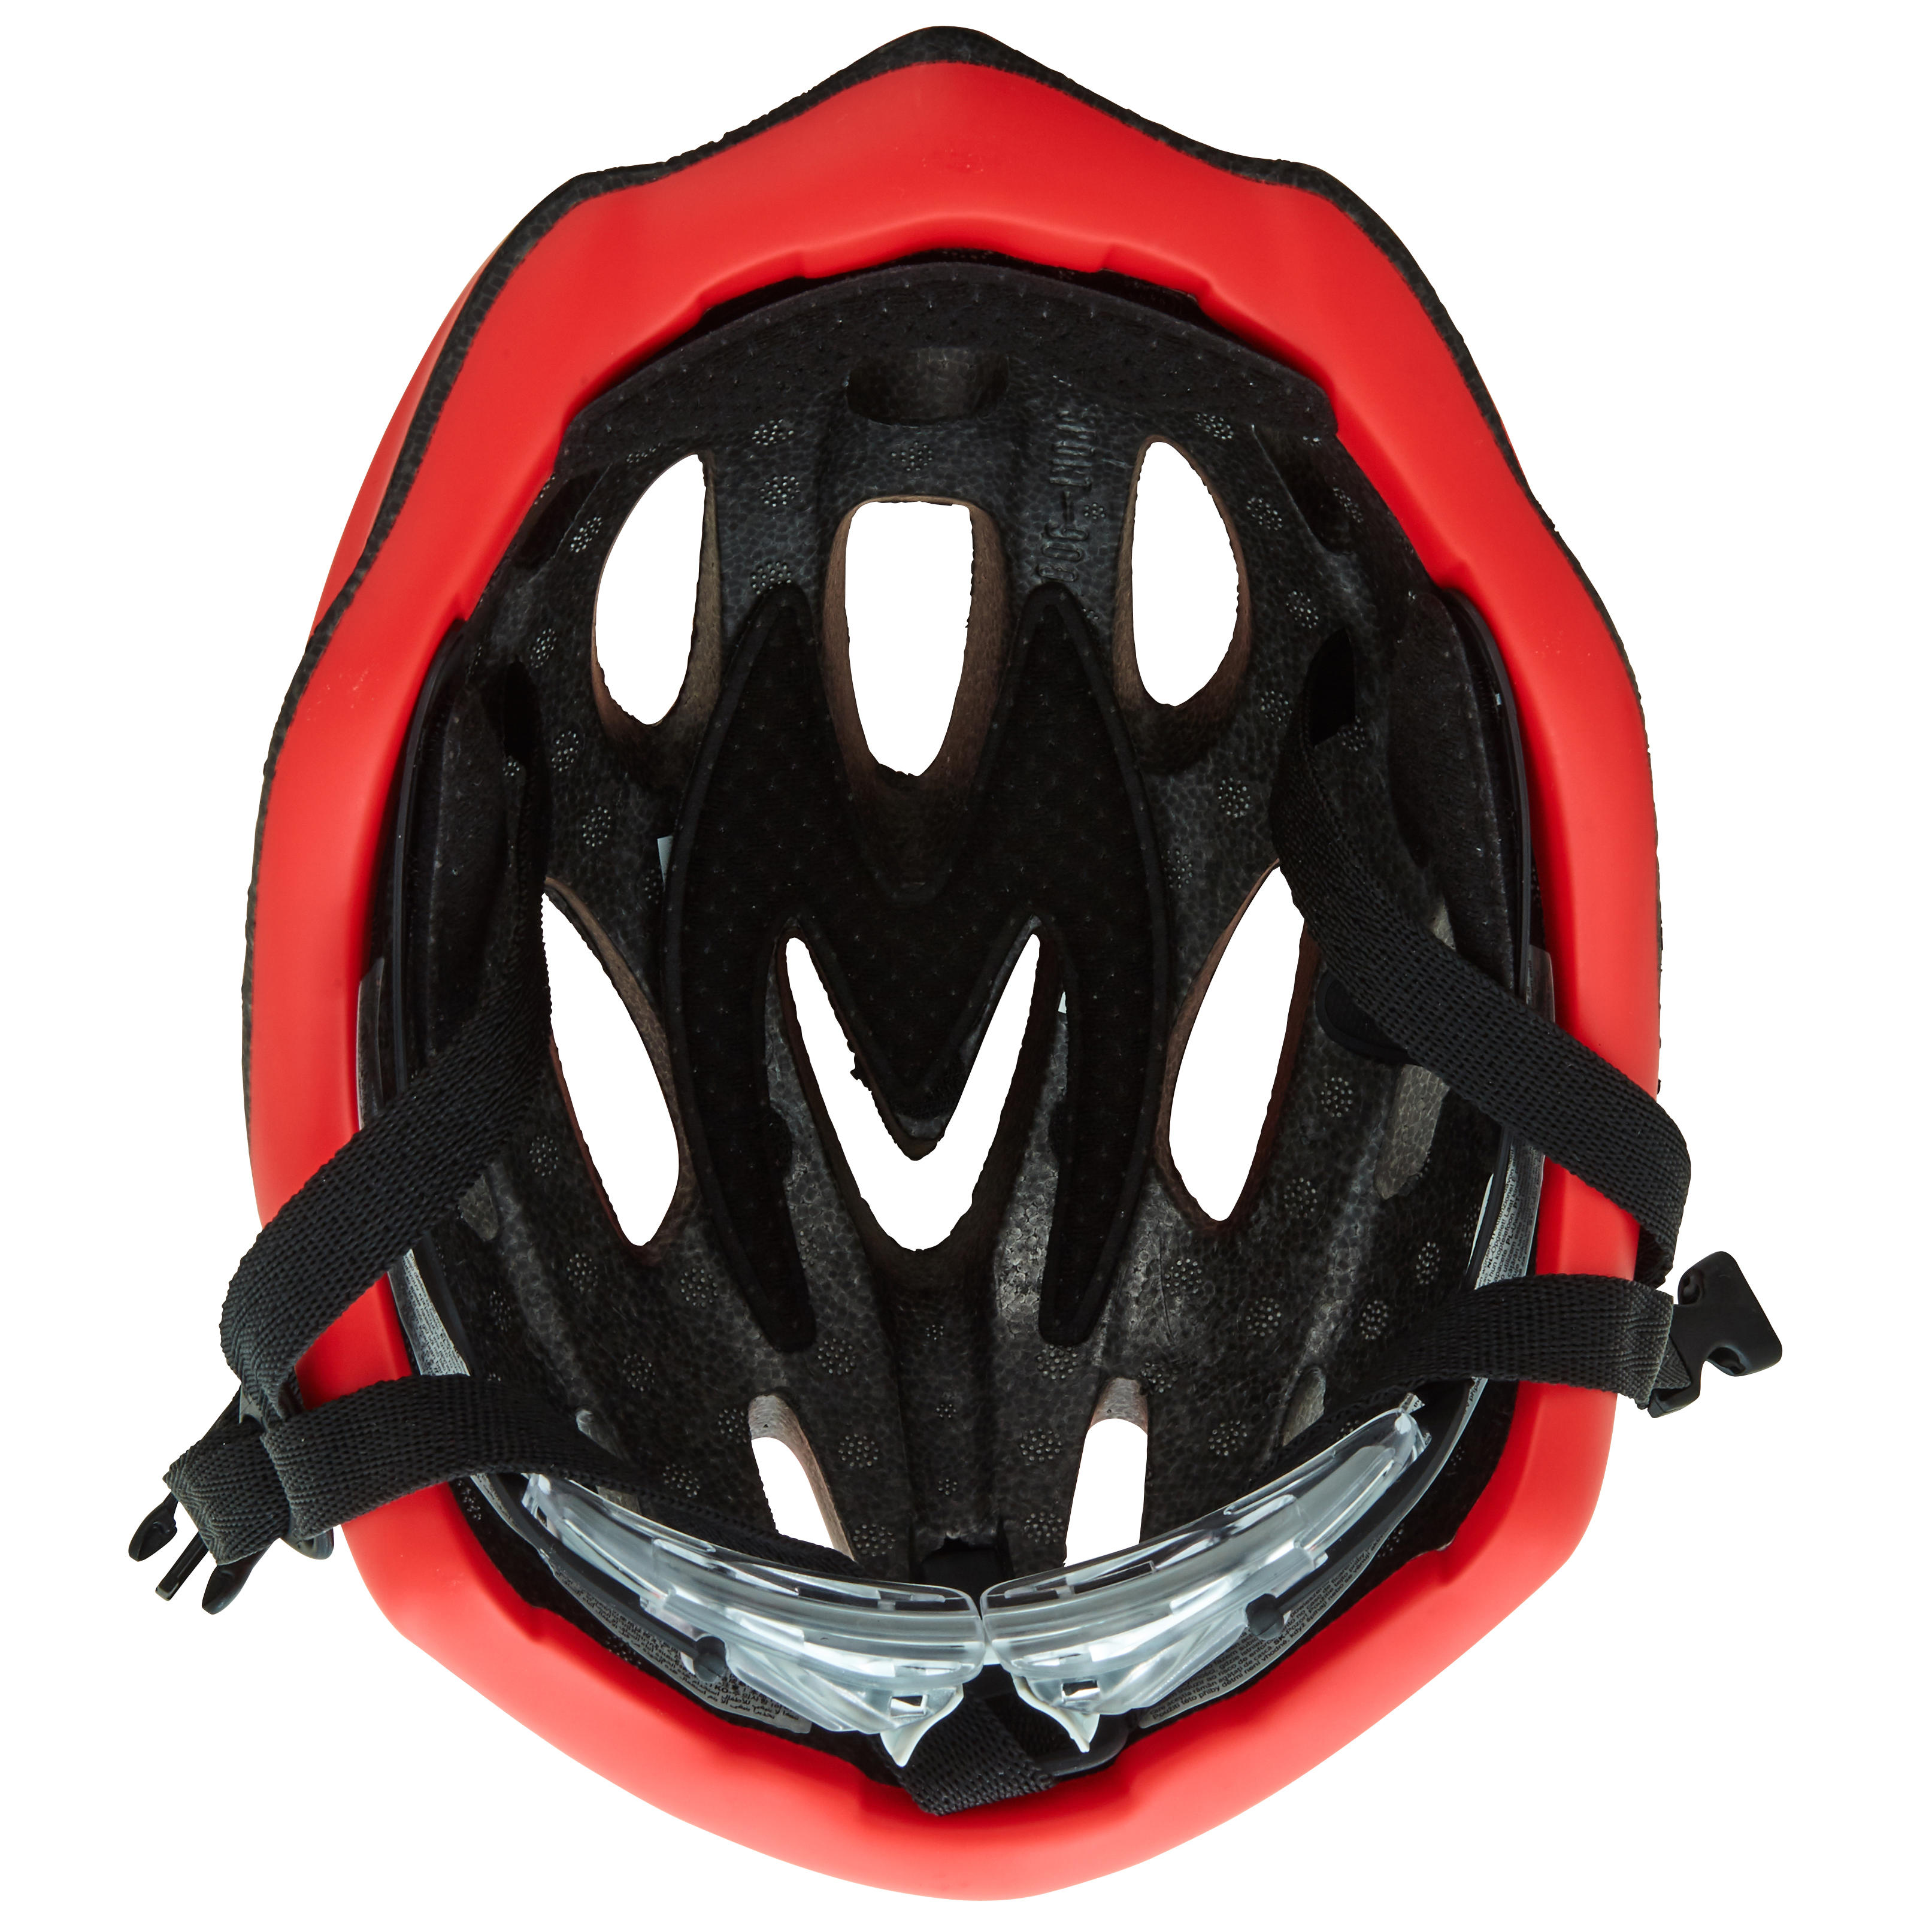 RoadR 500 Cycling Helmet - Red